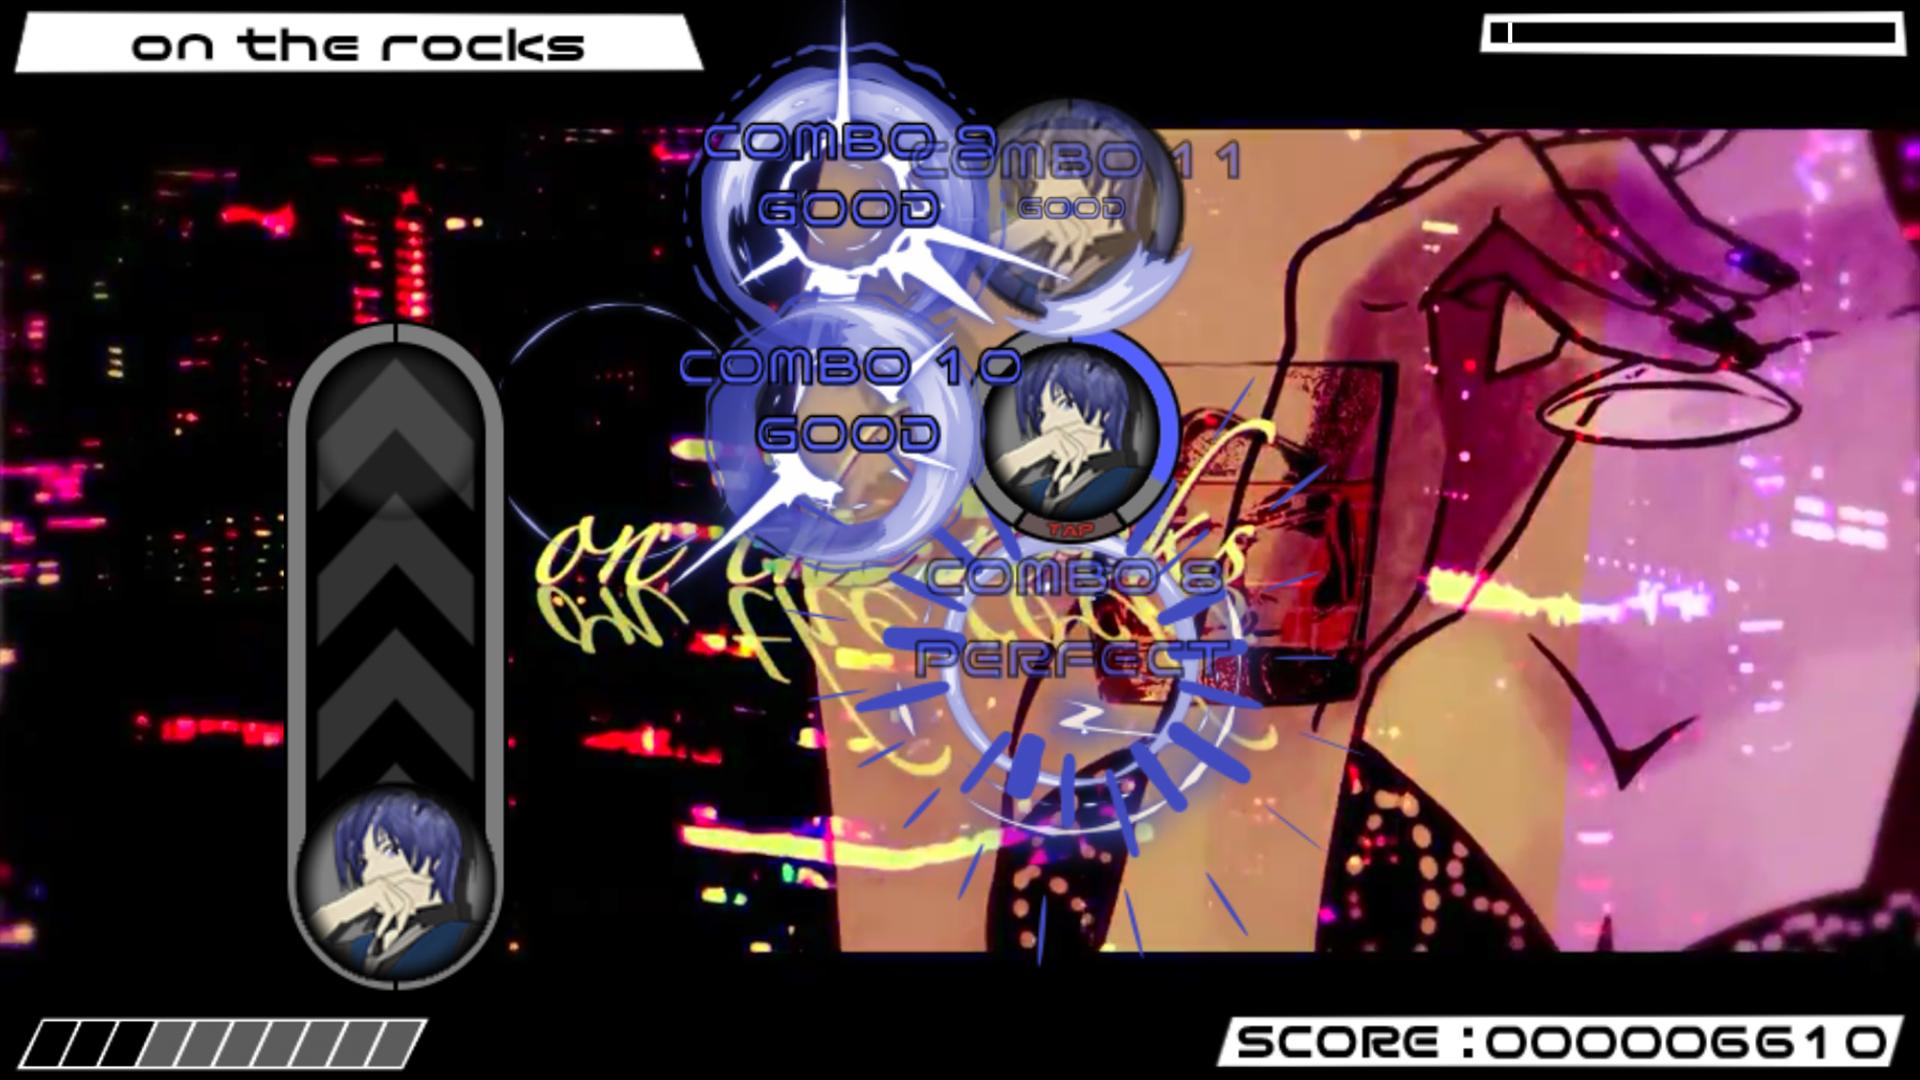 Beat Beat Vocaloid Reborn for Android - APK Download